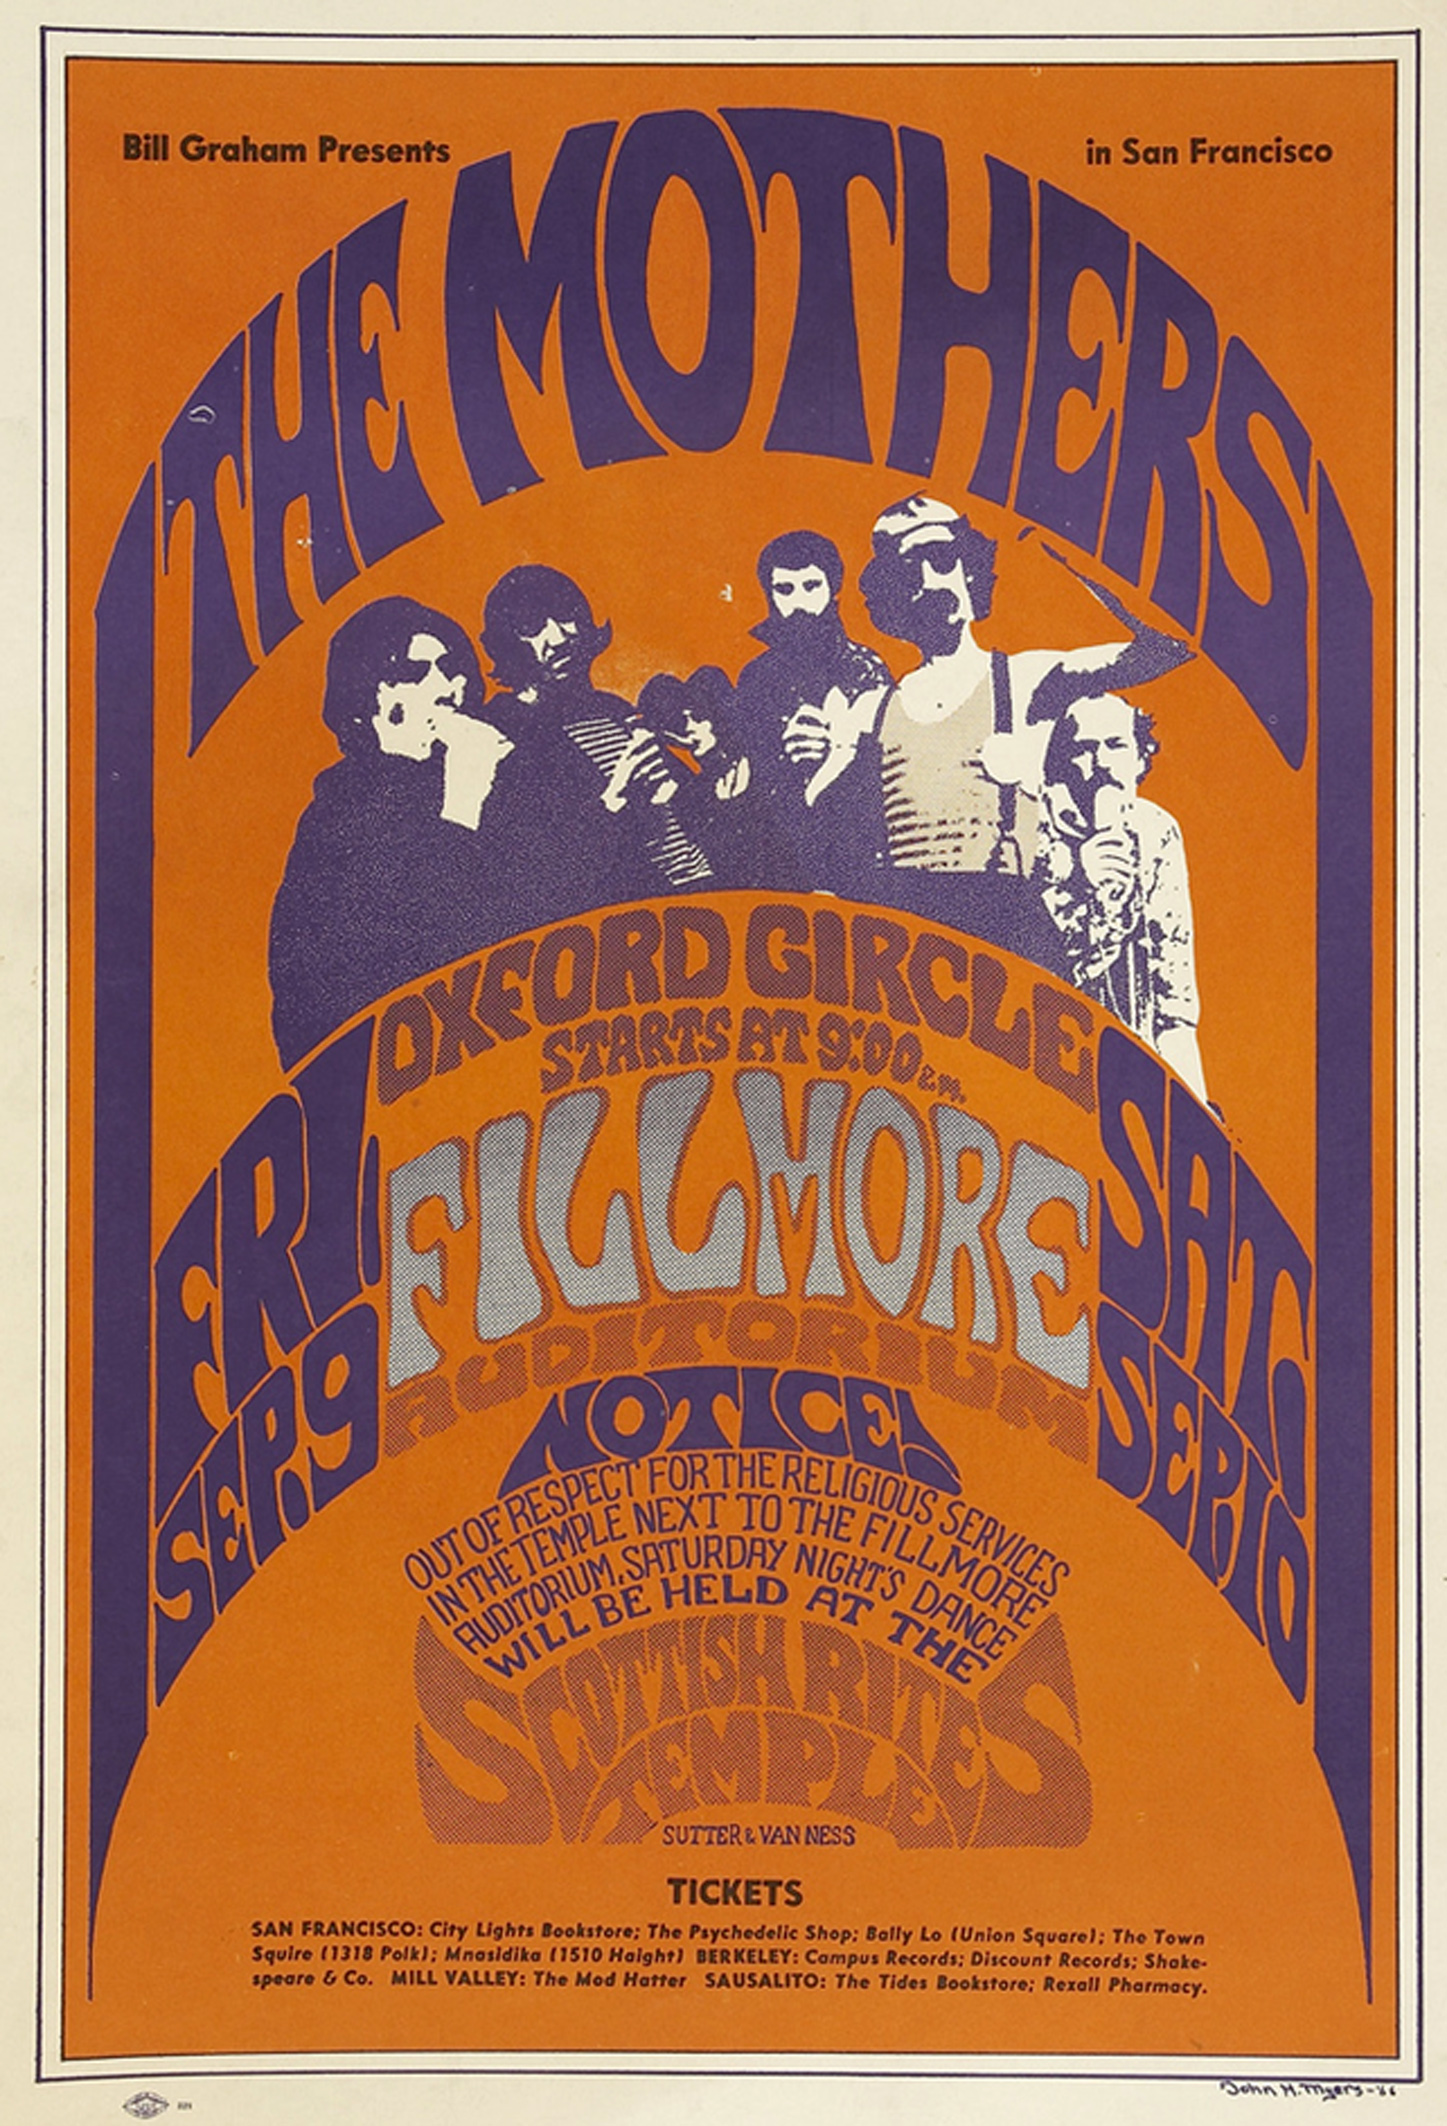 The Mothers of Invention 1966